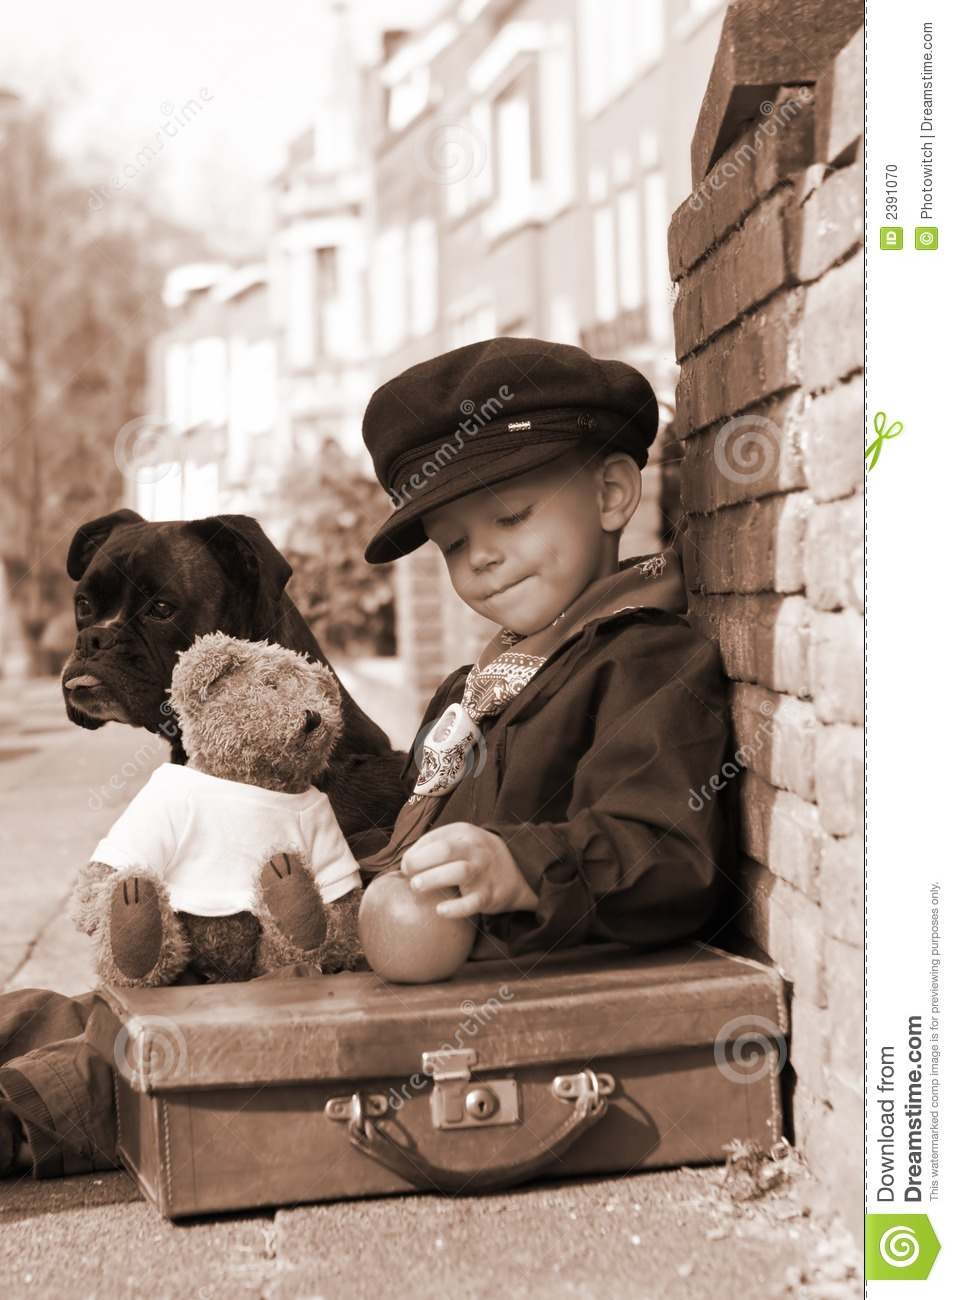 vintage boy in sepia stock photo image of packing children 2391070. Black Bedroom Furniture Sets. Home Design Ideas